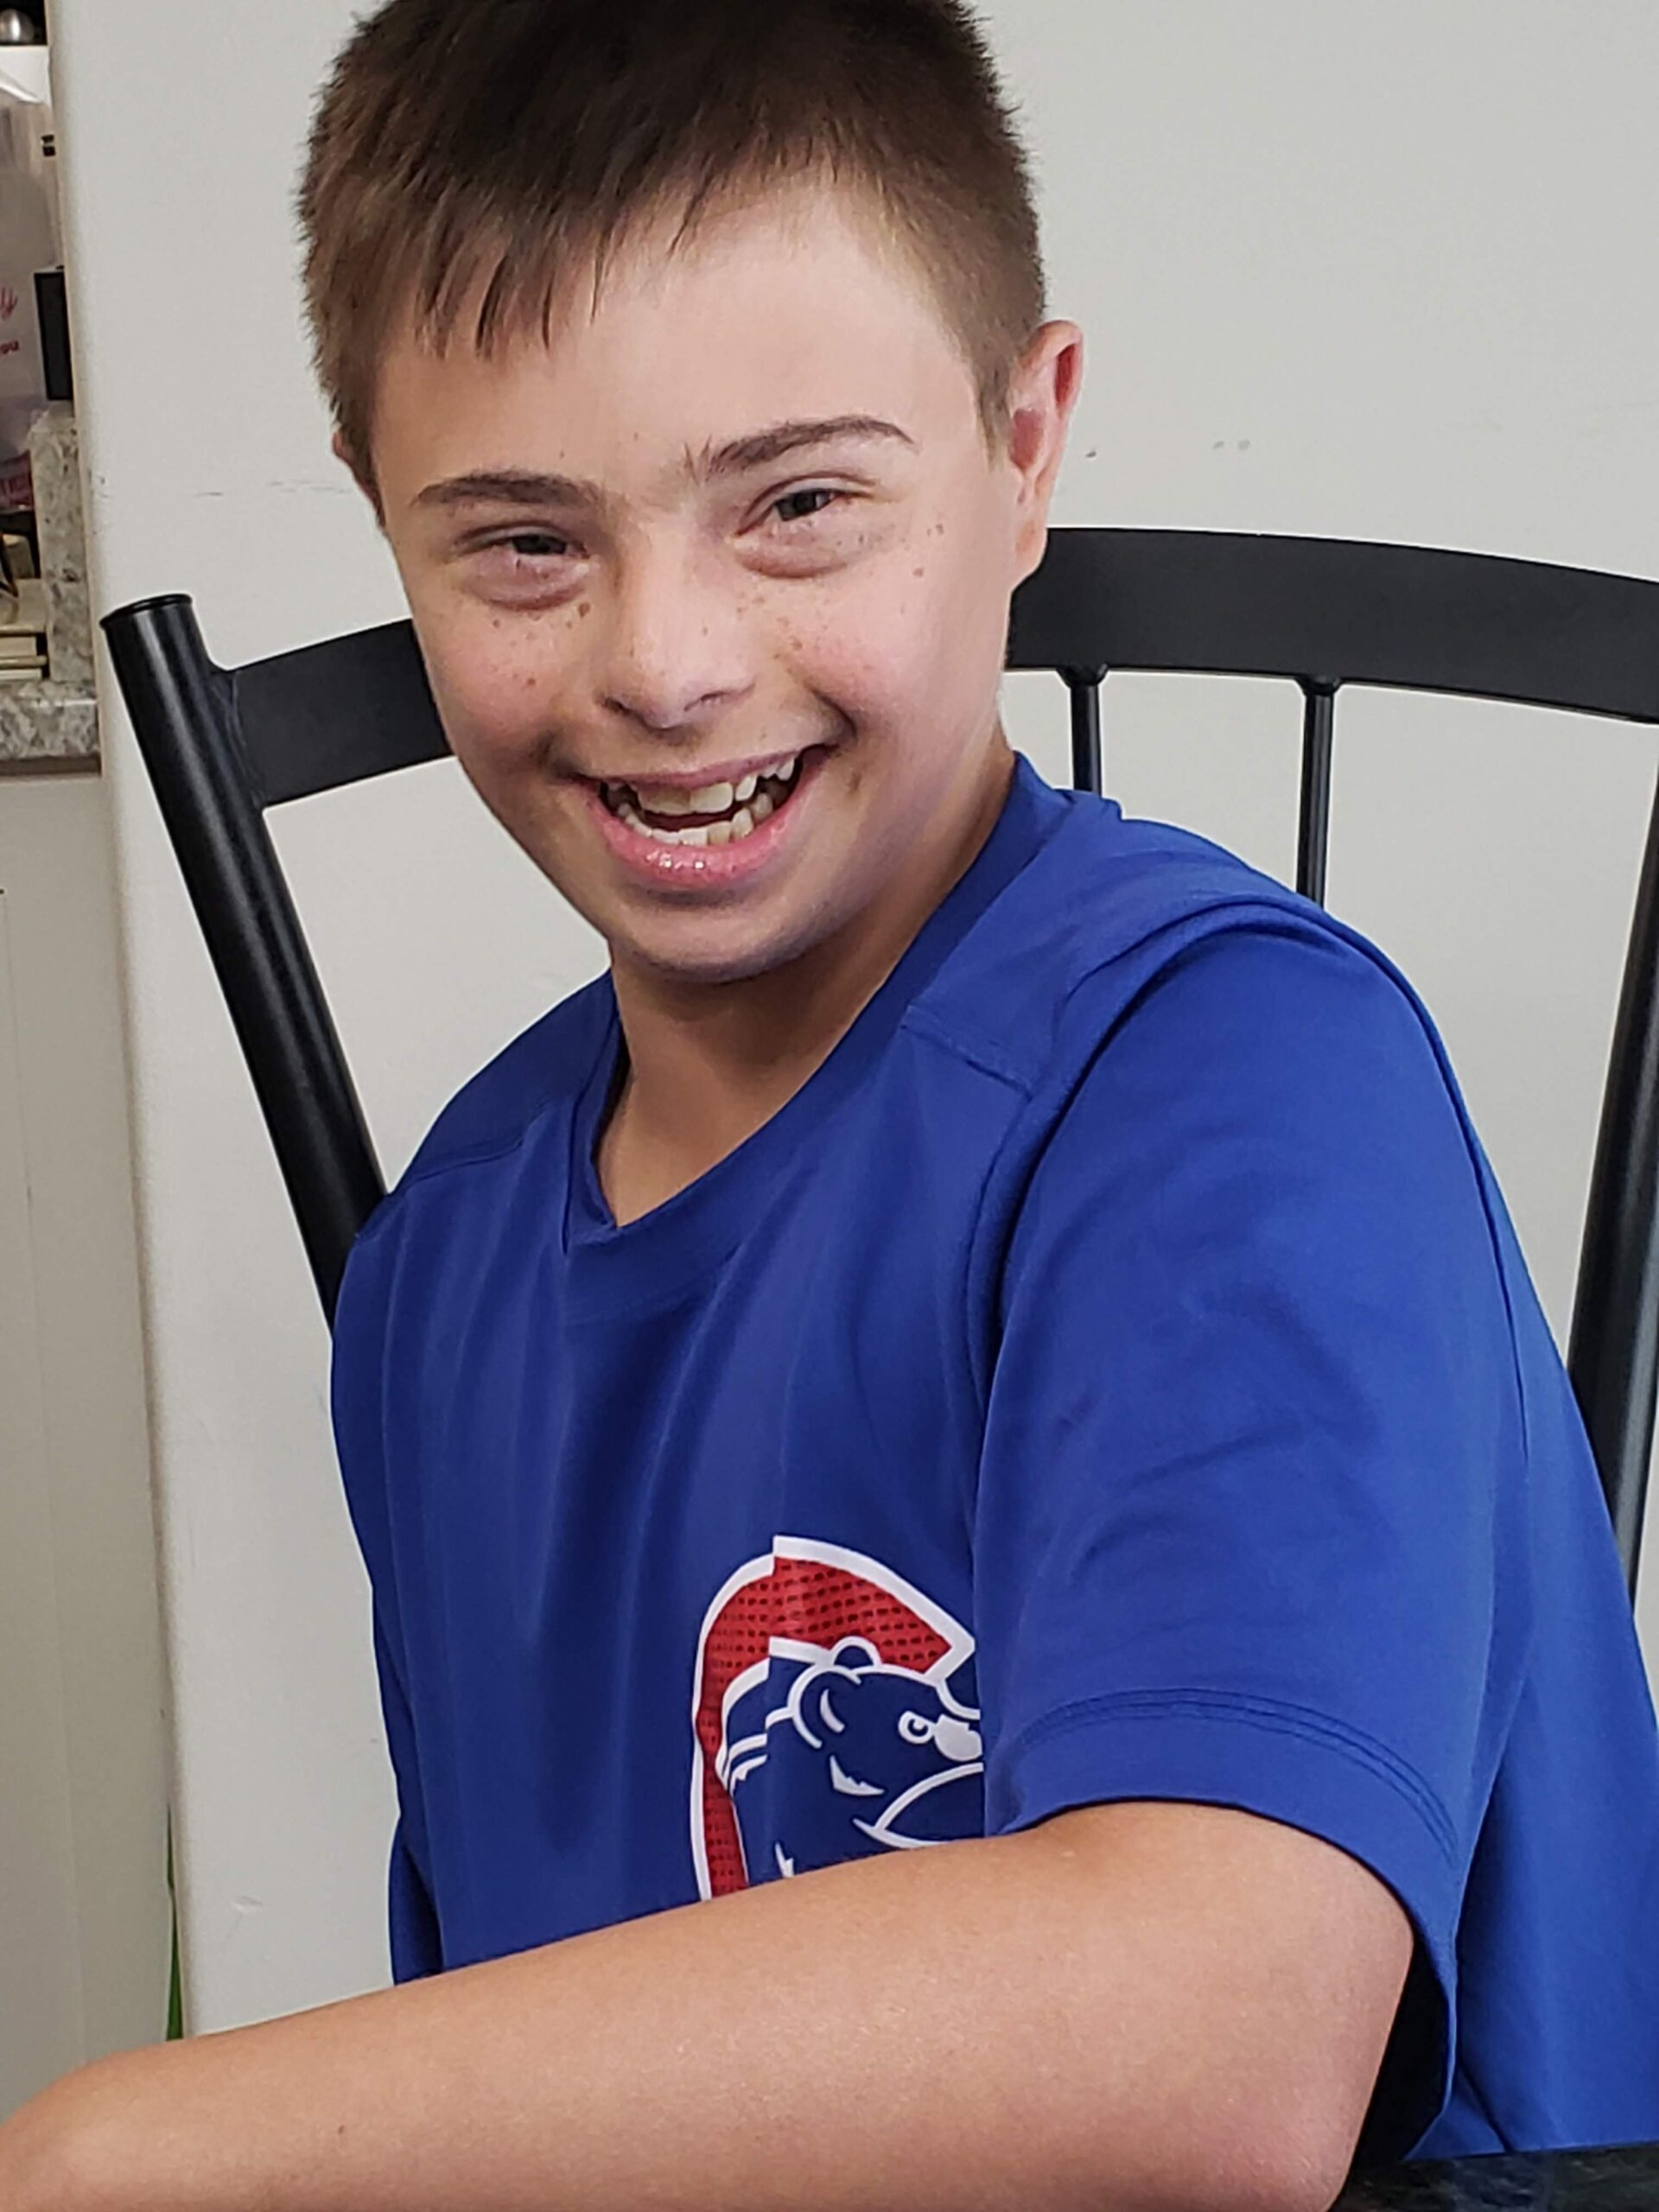 Local boy to serve as Honorary Guest for CHAT Clinic reopening